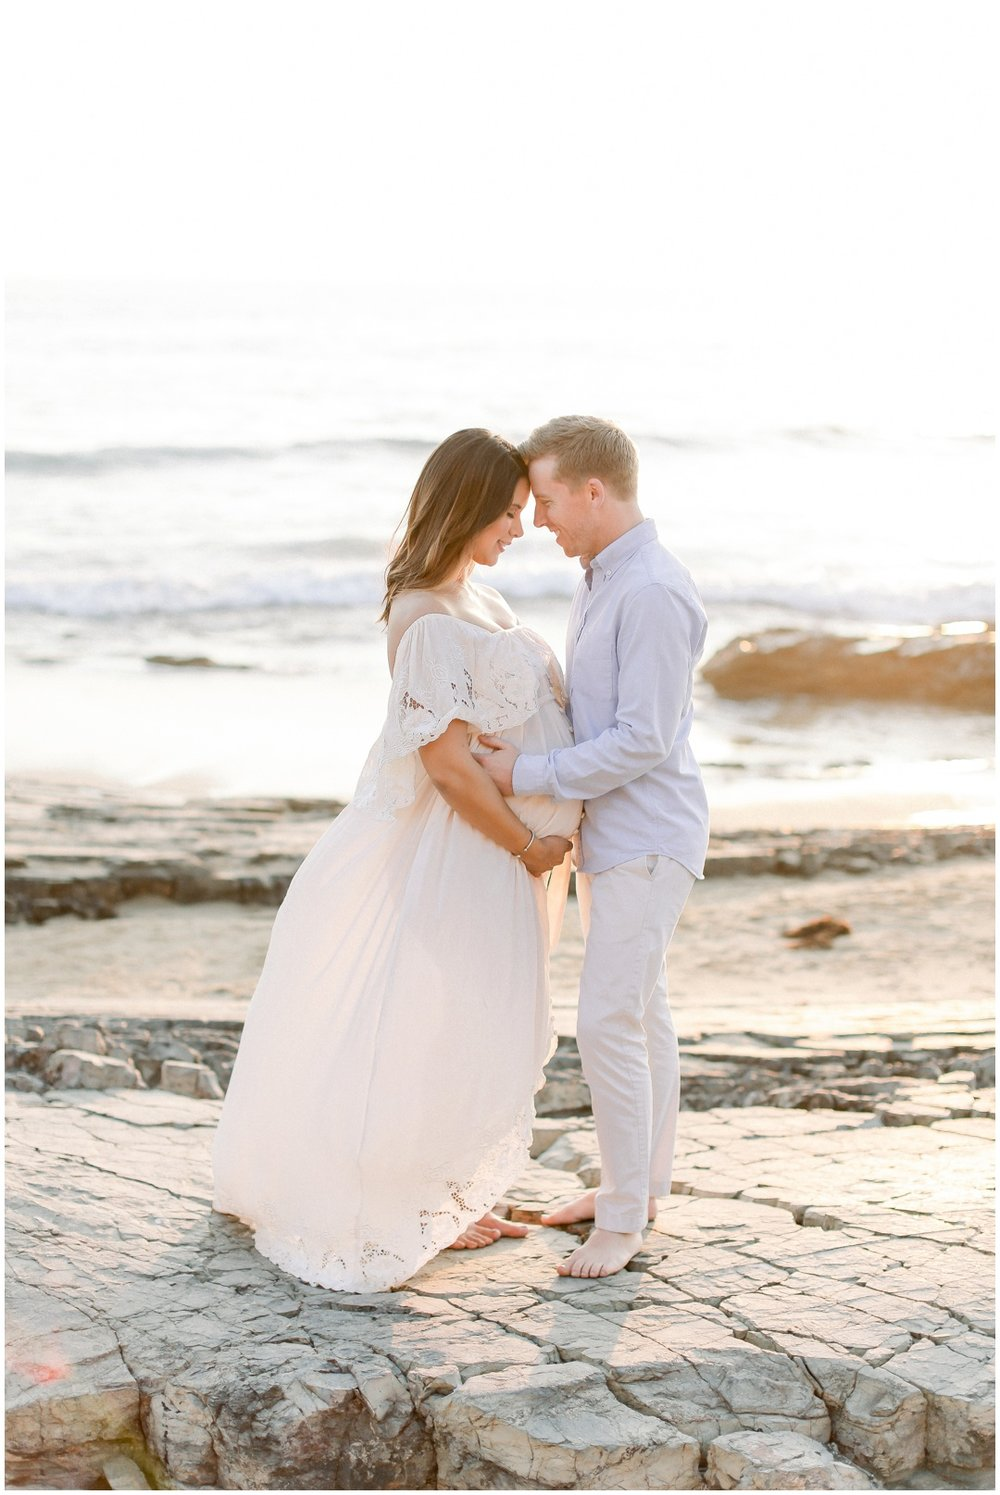 Orange_County_Maternity_Photographer_Newport_Beach_Family_Photographer_Newport_Beach_Newborn_Photographer_Orange_County_Family_Photographer_Cori_Kleckner_Photography_Huntington_Beach_Photographer_Nicole_Gire_Brandon_Gire__2567.jpg